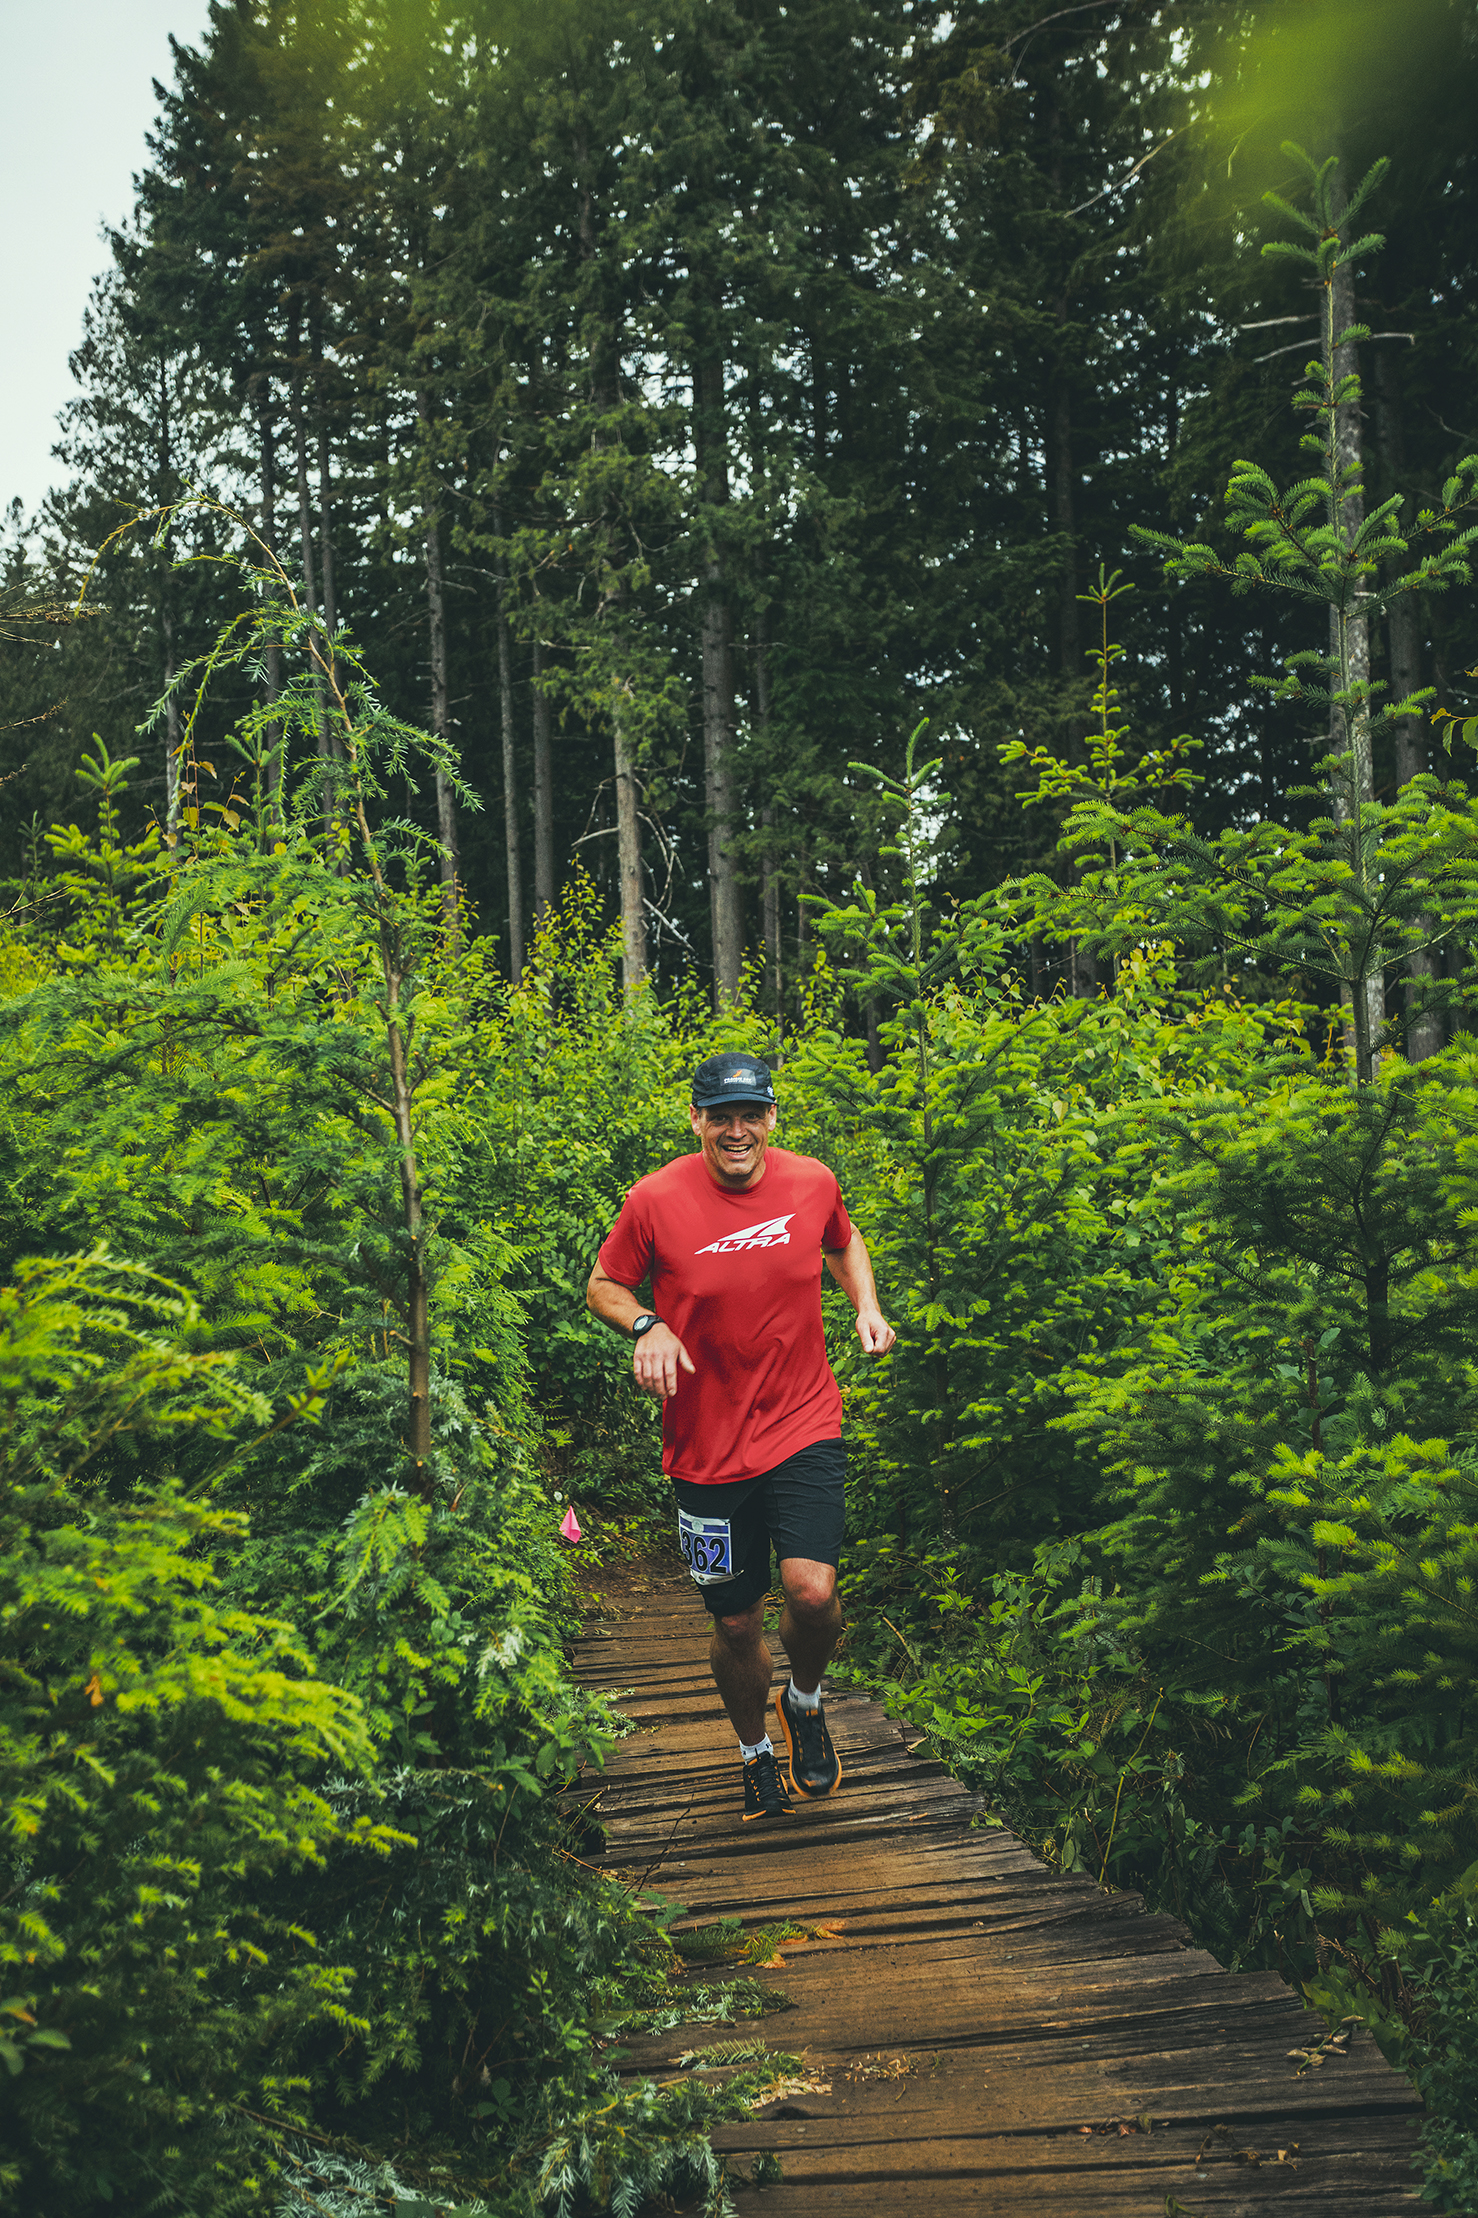 Fraser Valley Trail Races - Bear Mountain - IMG_1469 by Brice Ferre Studio - Vancouver Portrait Adventure and Athlete Photographer.jpg